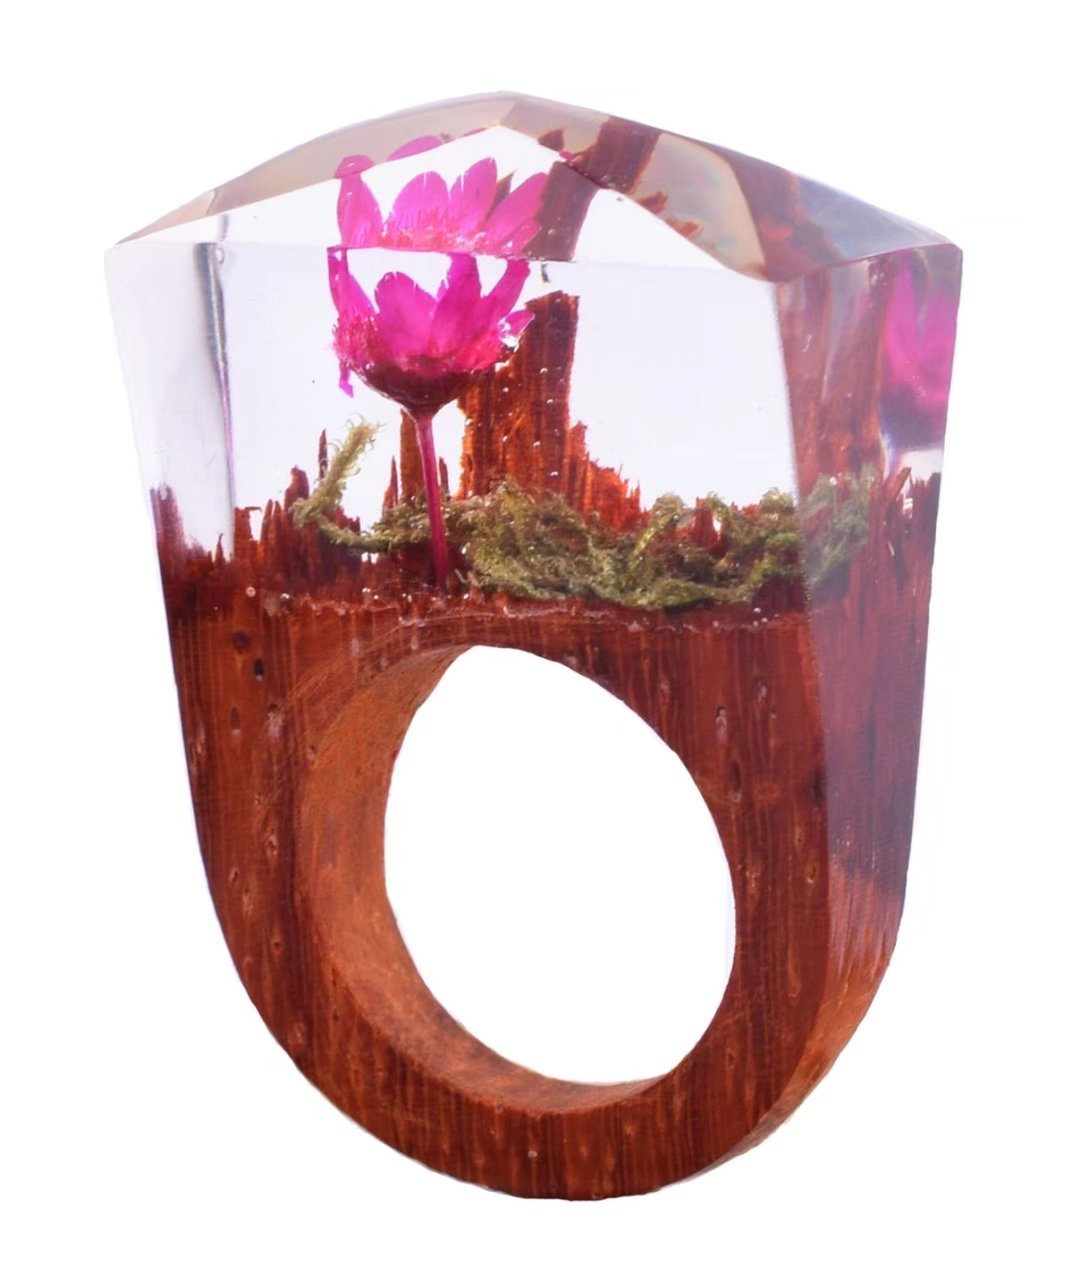 Handmade Wood Resin Ring With Rose Flower Landscape Inside Jewelry